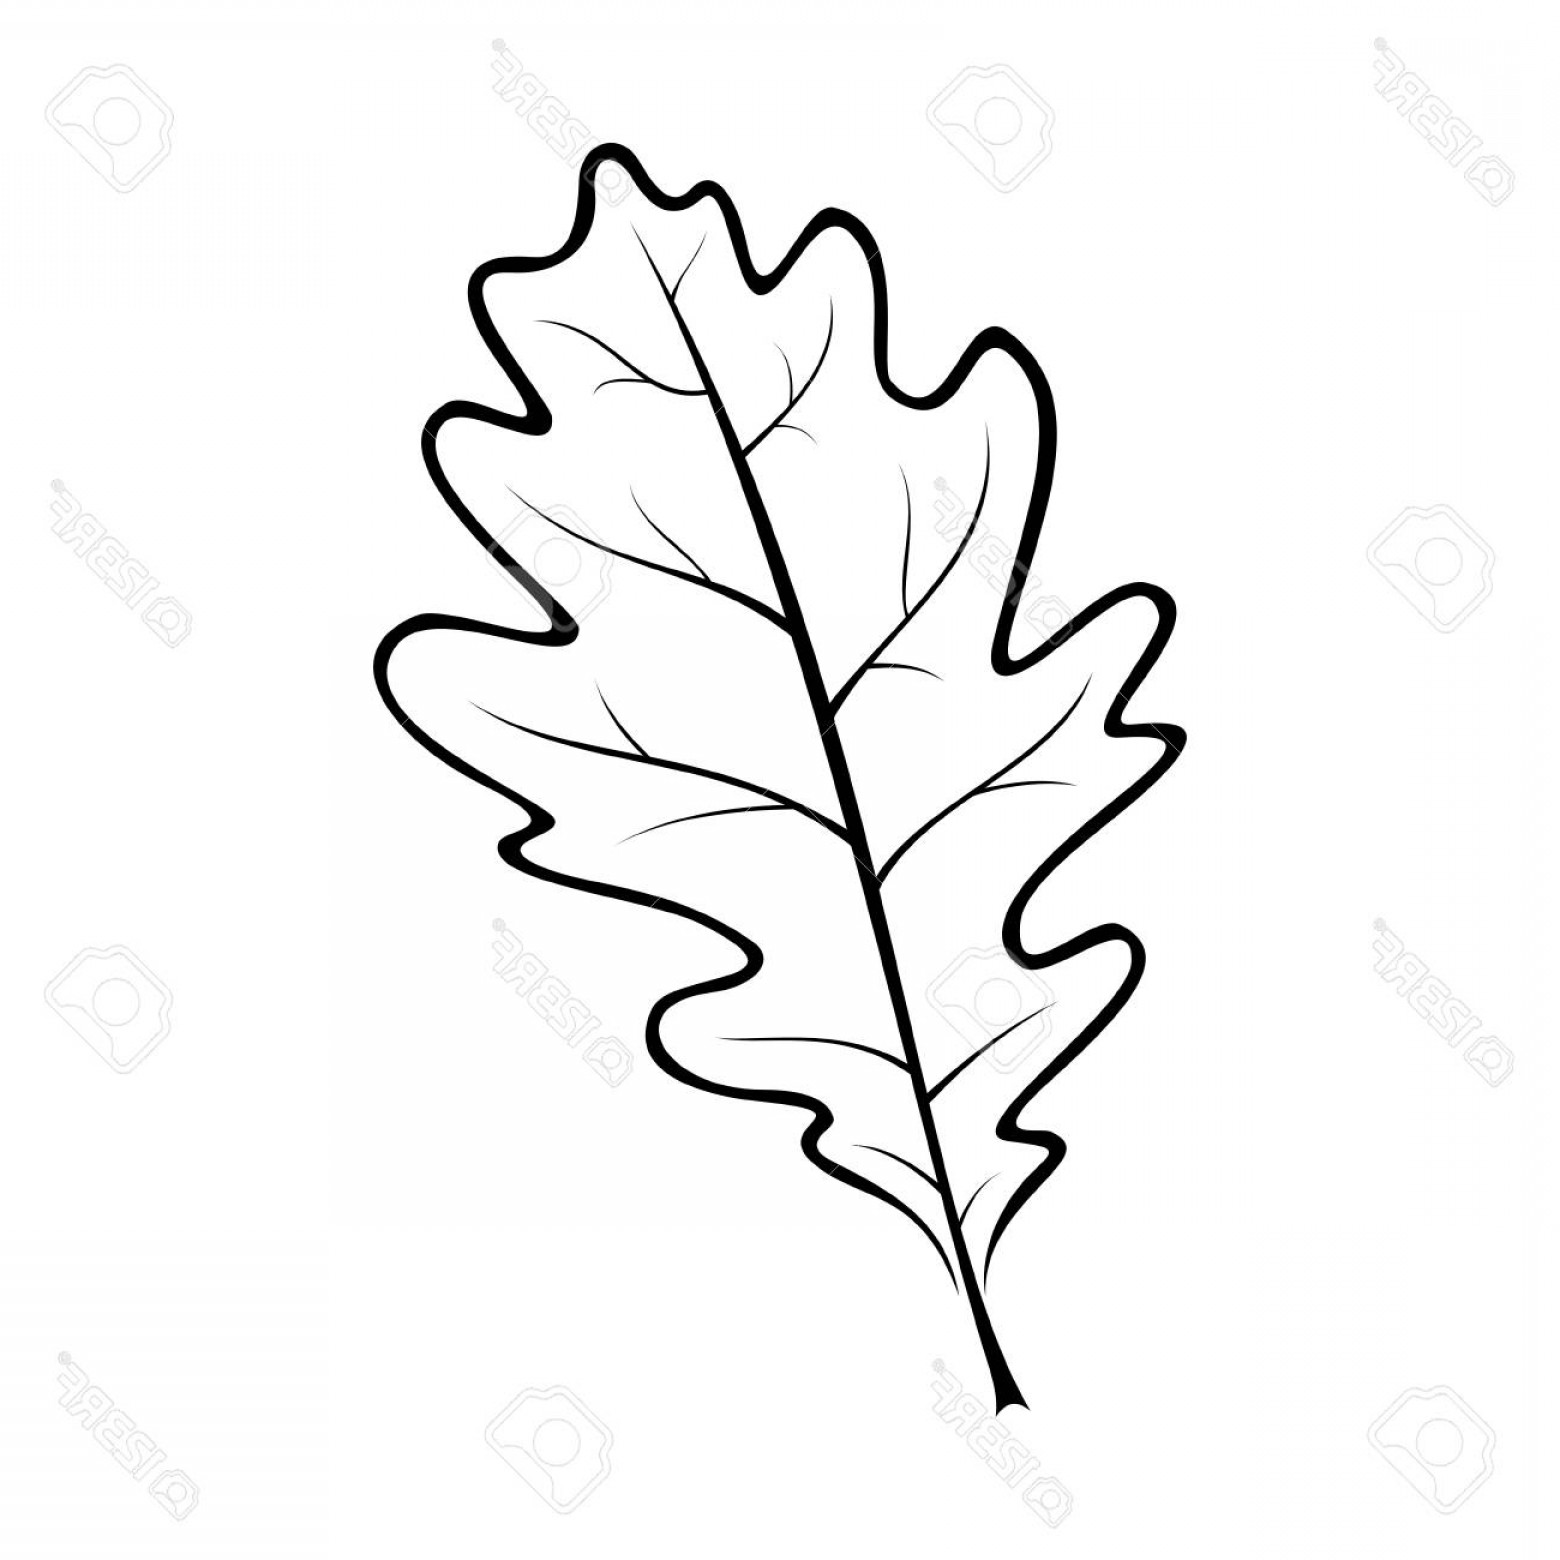 Black And White Vector Oak Leaf Art.